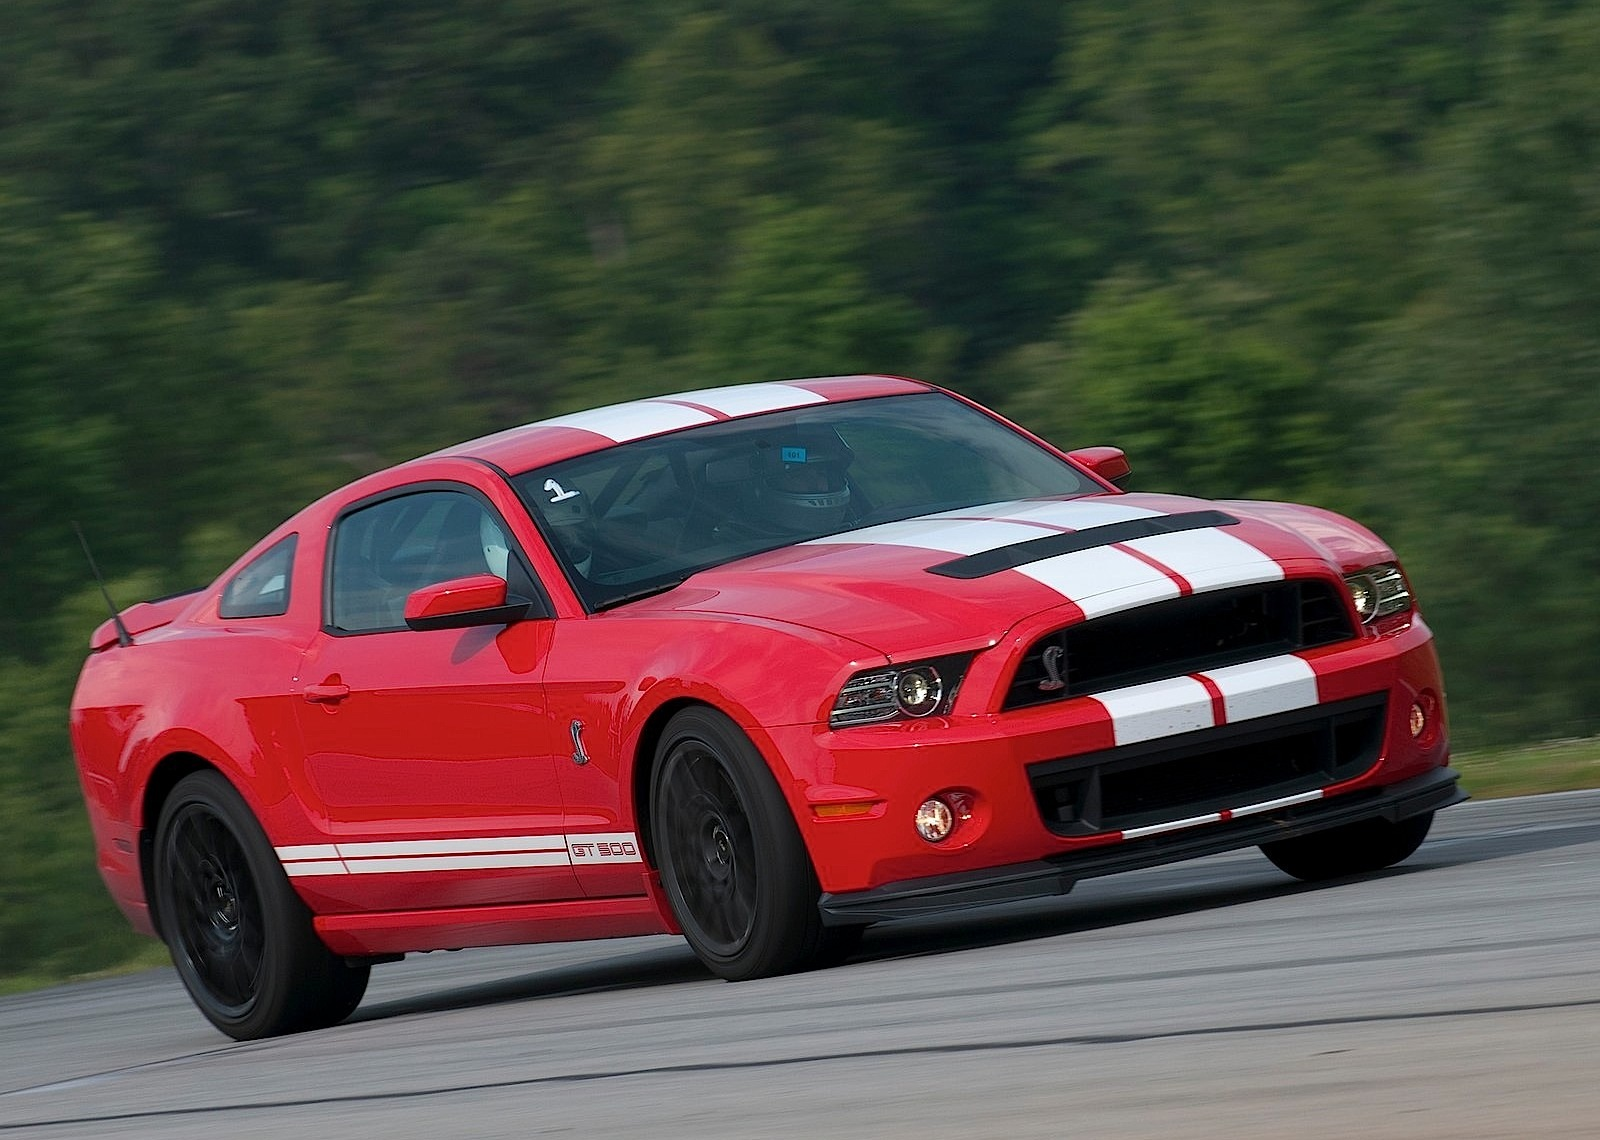 FORD Mustang Shelby GT500 specs & photos - 2012, 2013, 2014, 2015, 2016, 2017, 2018 - autoevolution